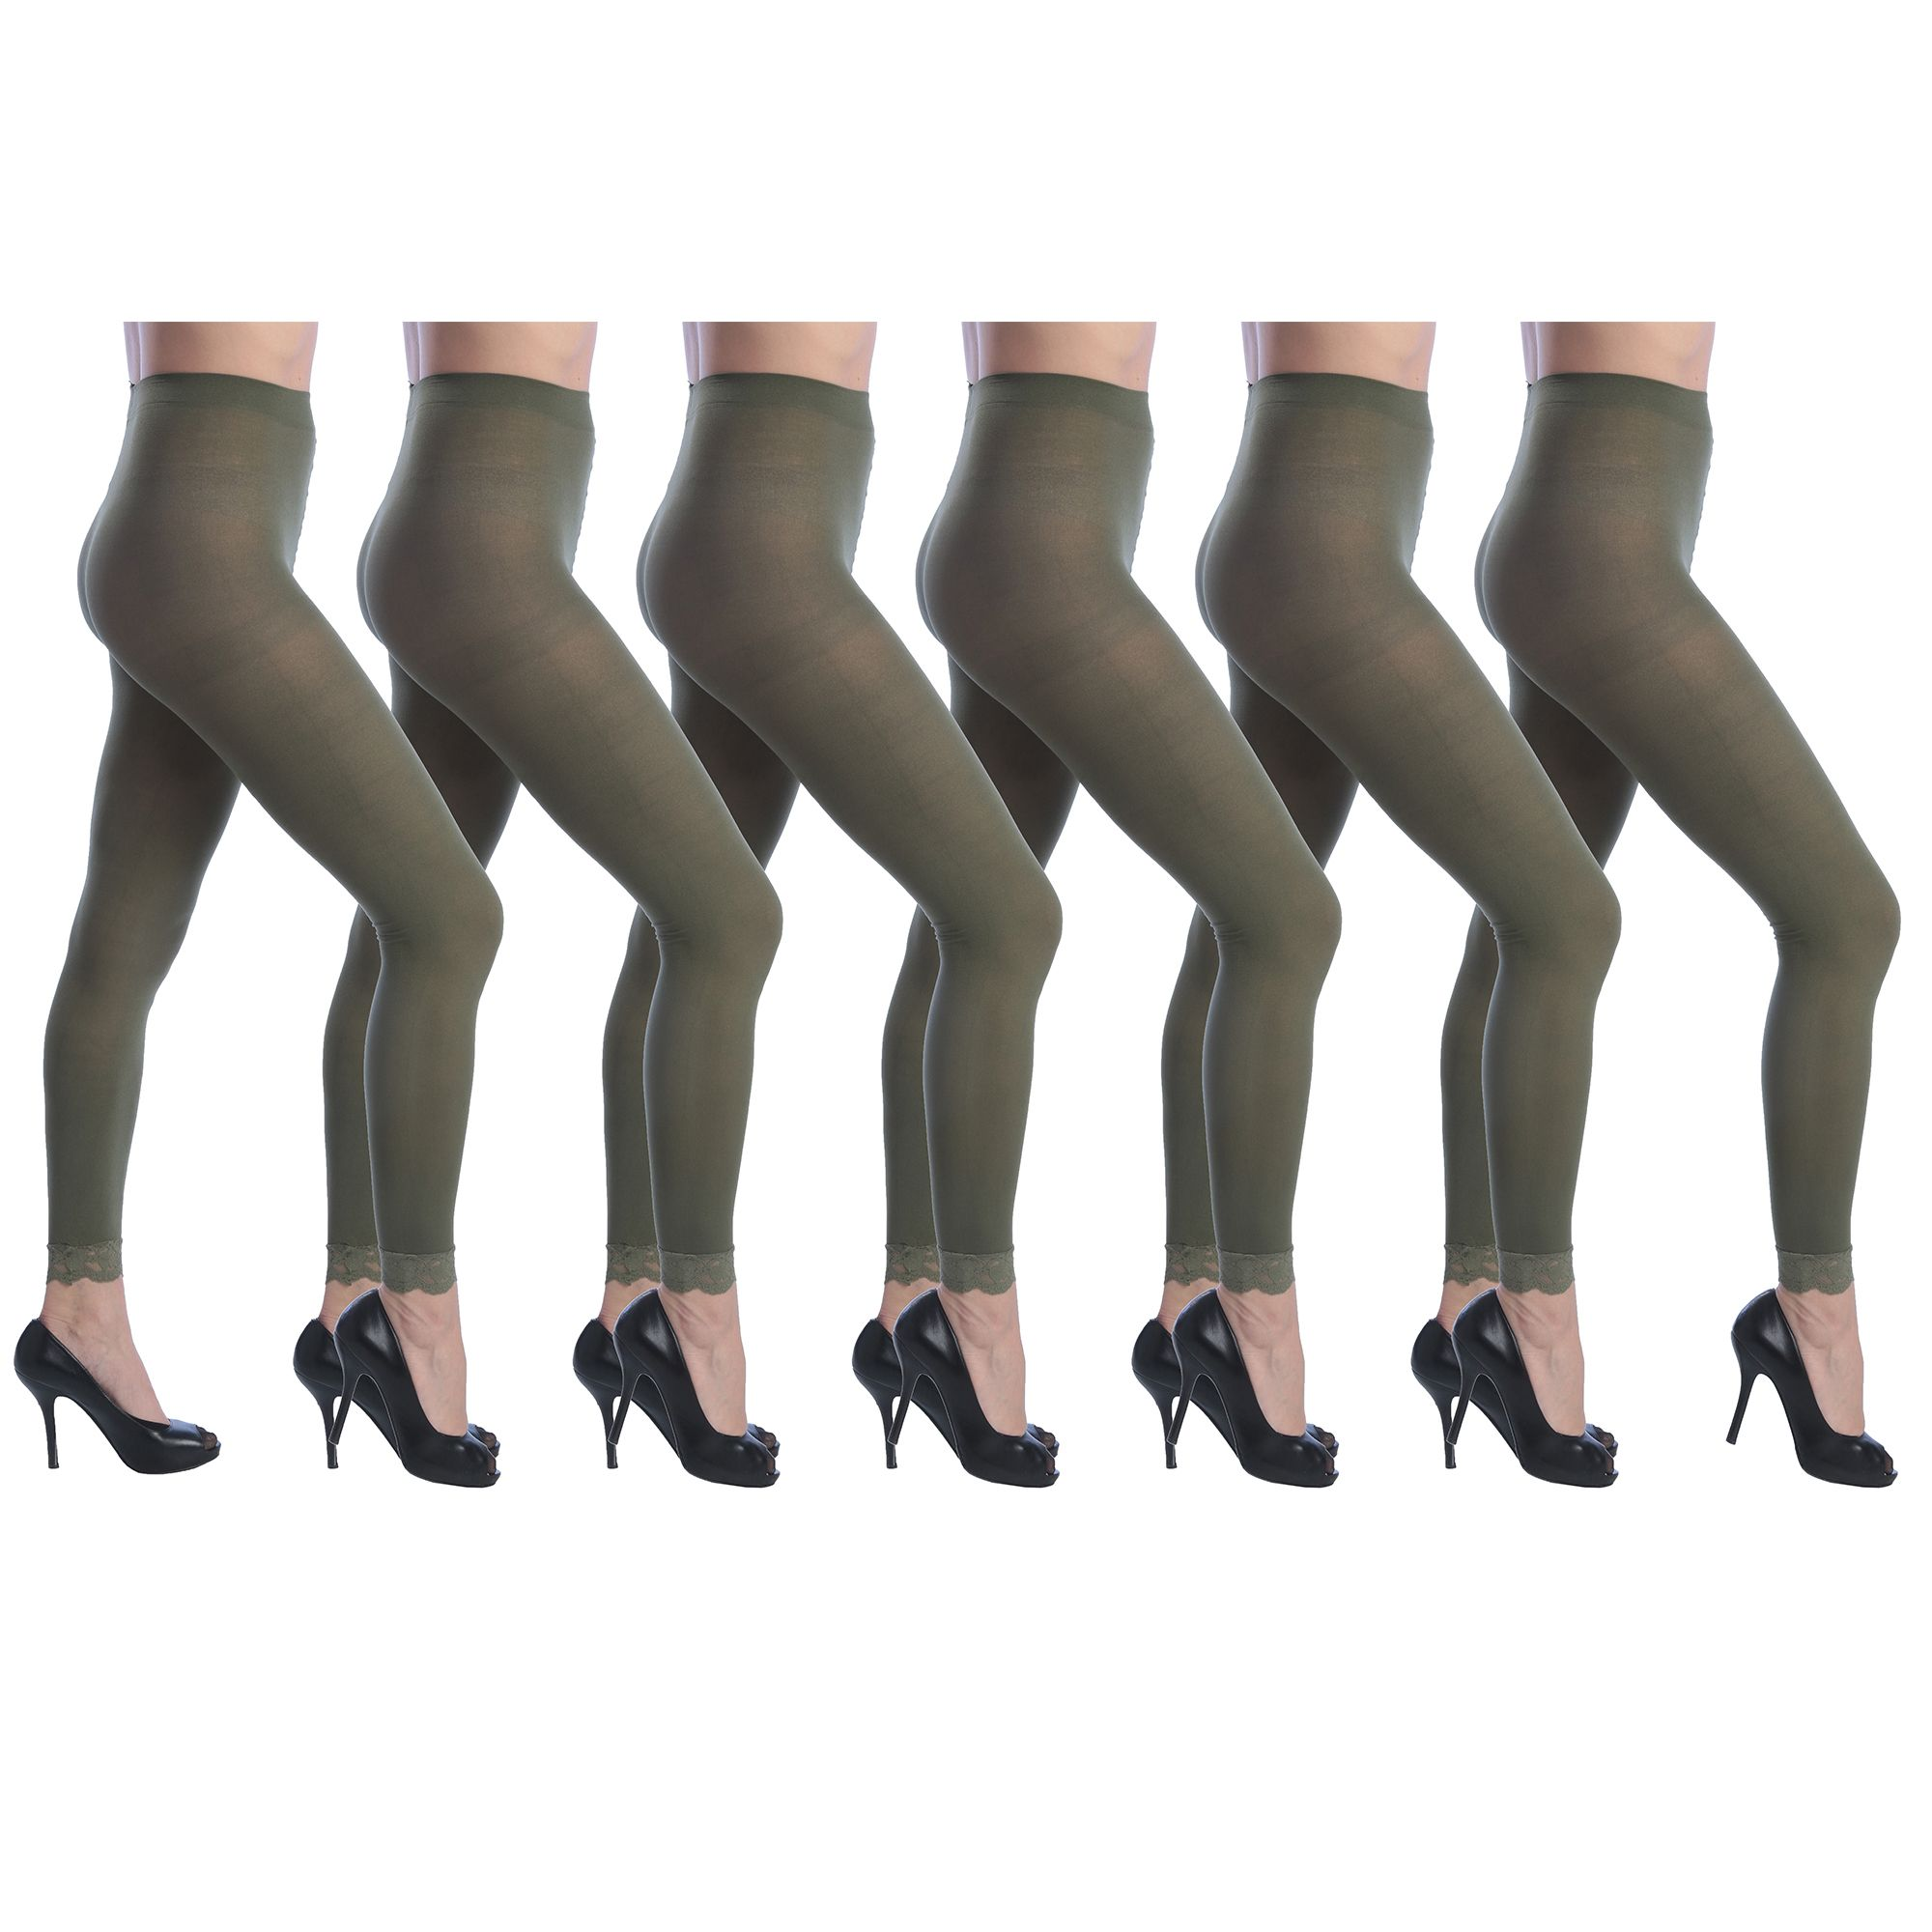 23e895a86 Isadora Women s 6 Pack Footless Tights with Lace Trim Set Pack ...